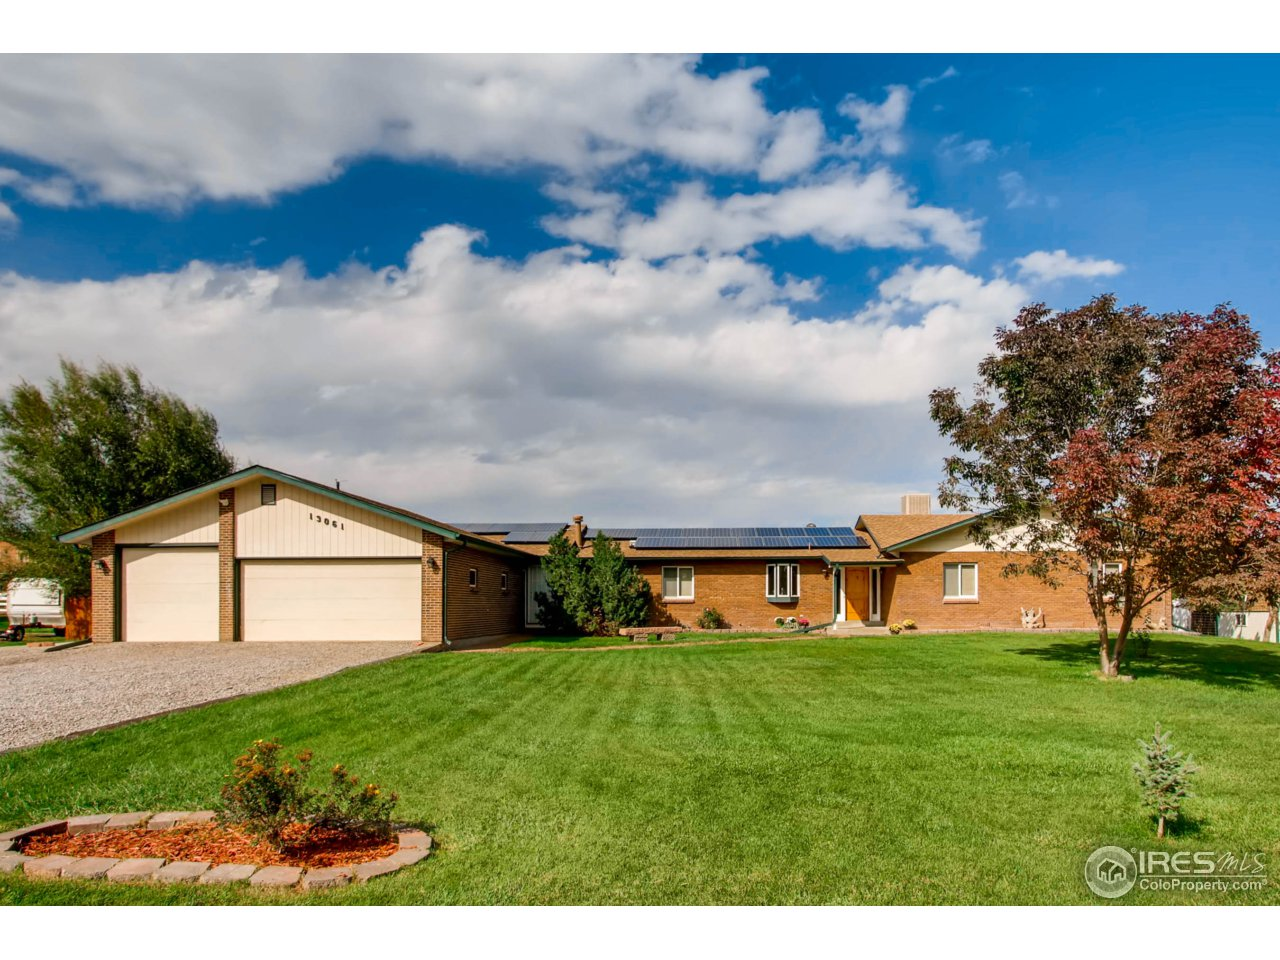 13061 W 75th Ave, Arvada CO 80005